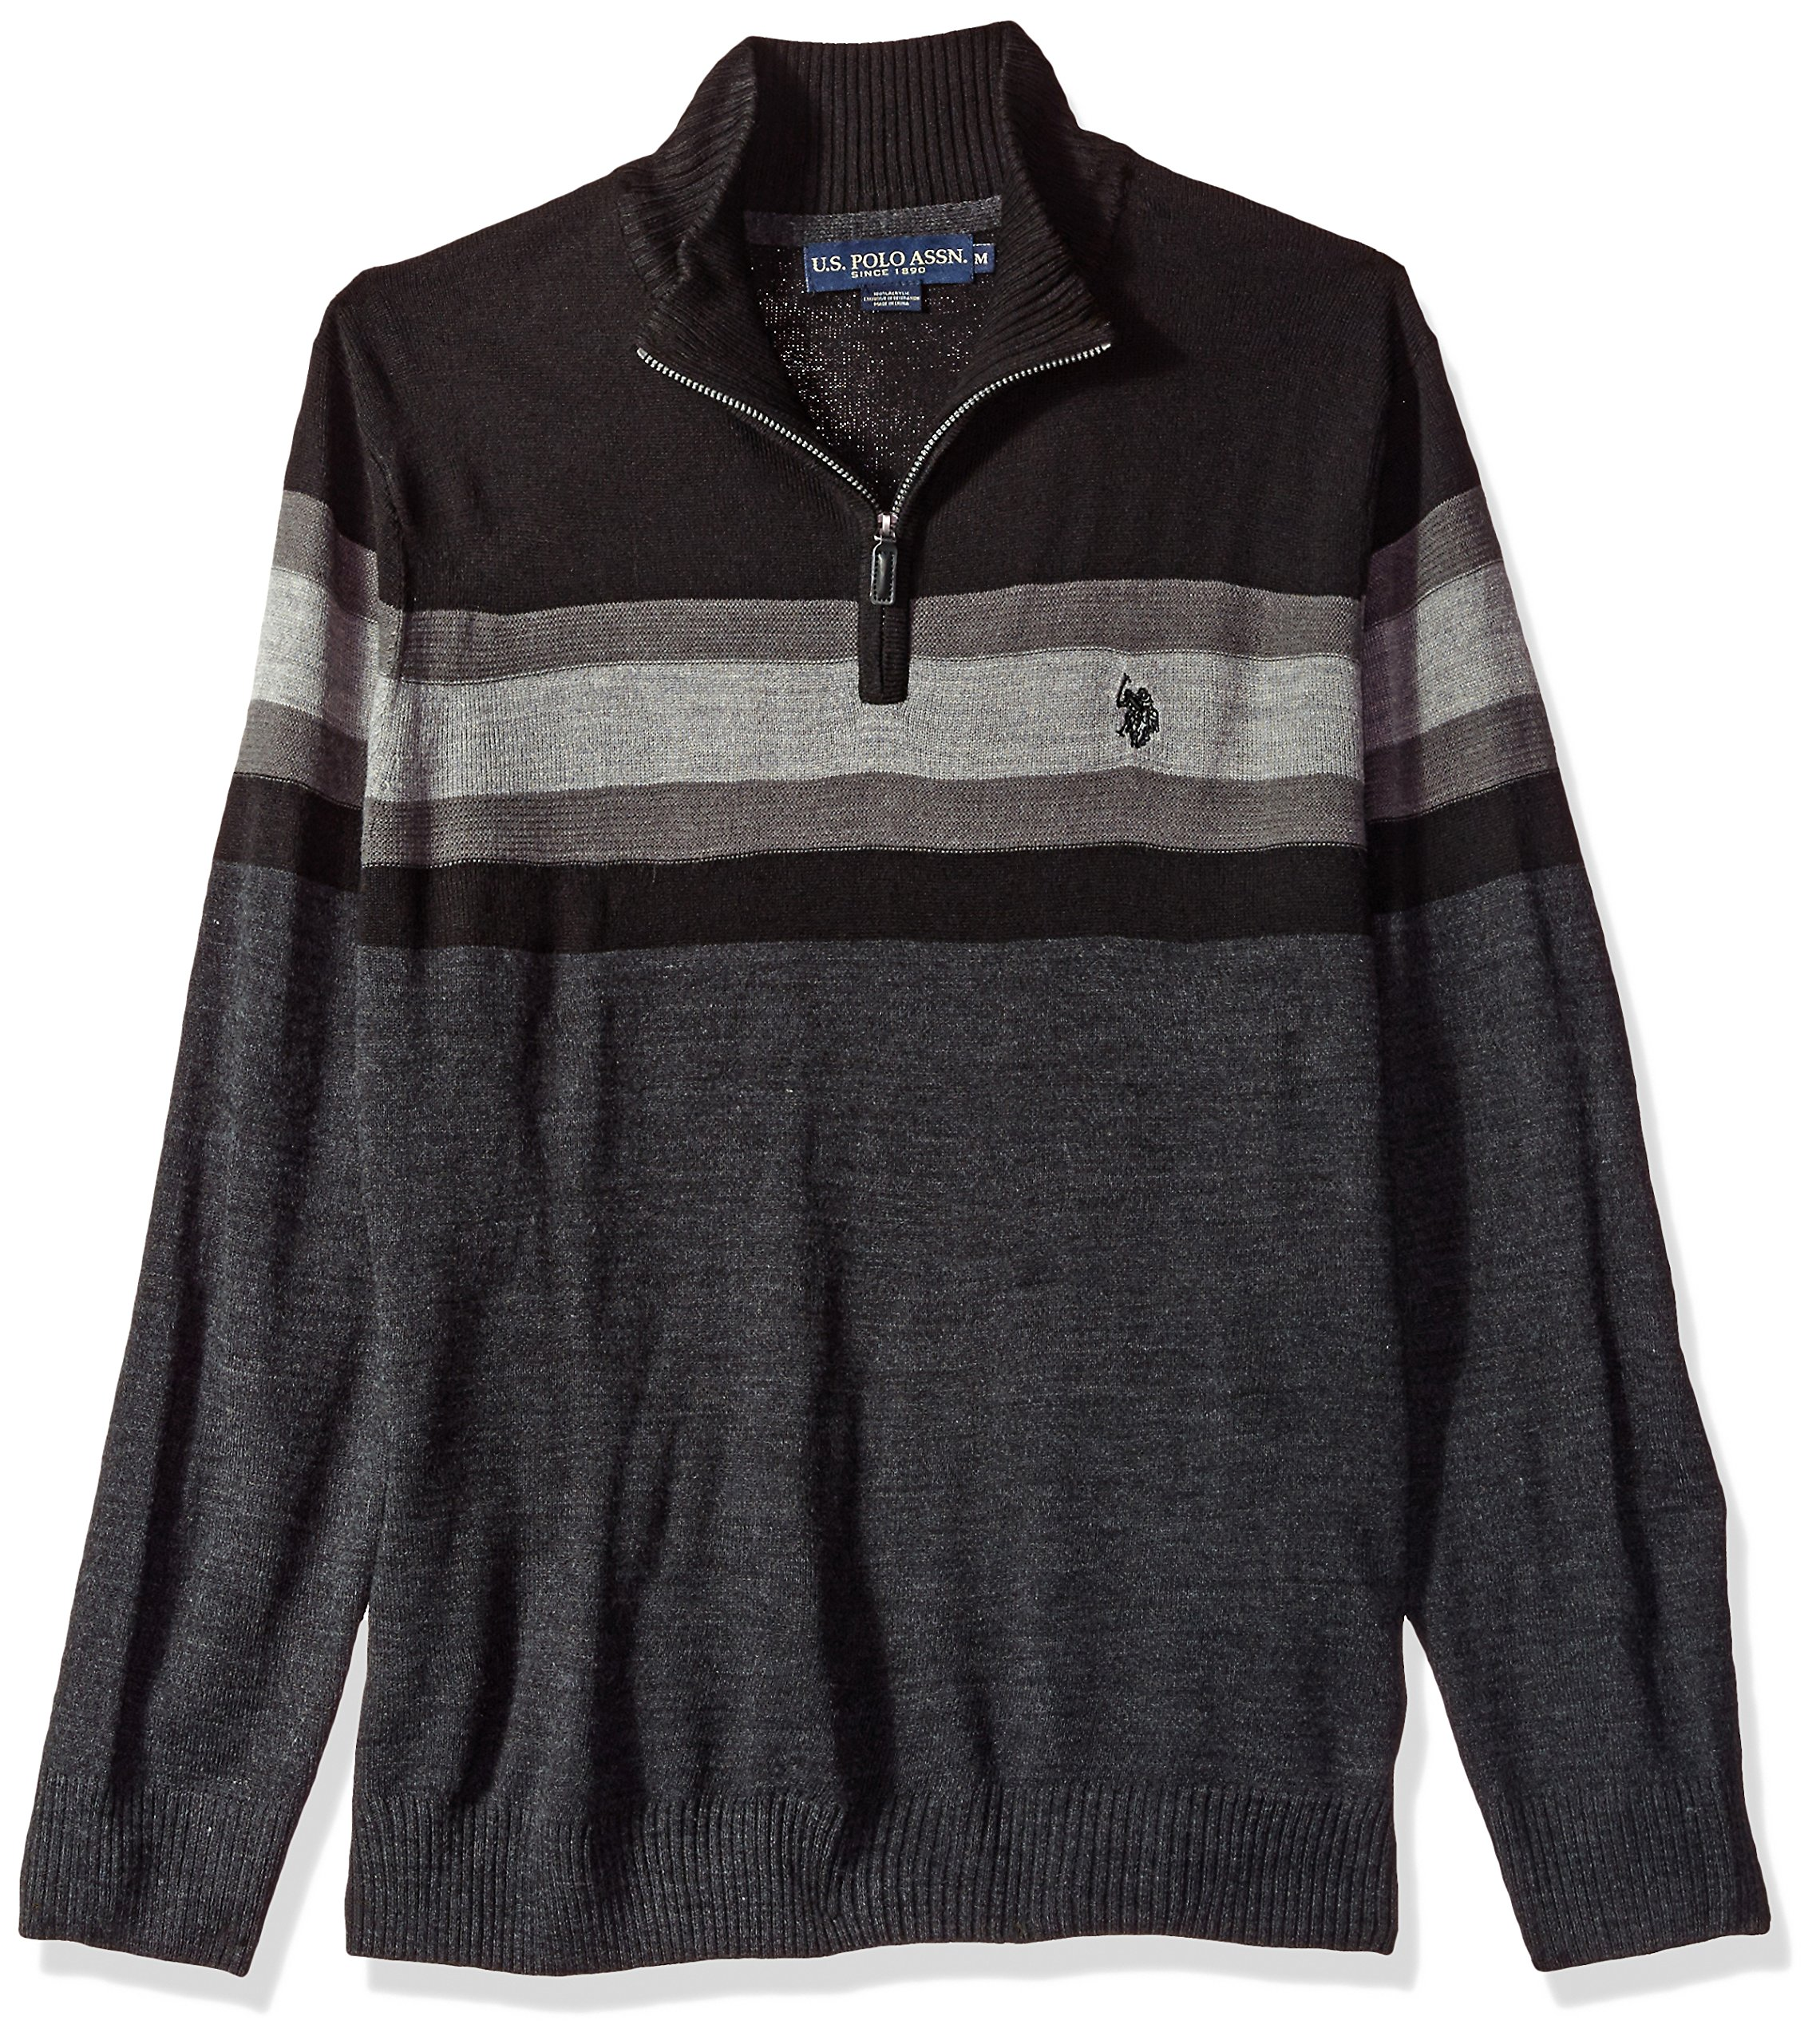 U.S. Polo Assn. Men's Acrylic Chest Stripe 1/4 Zip Sweater, Charcoal Heather, XX-Large by U.S. Polo Assn.